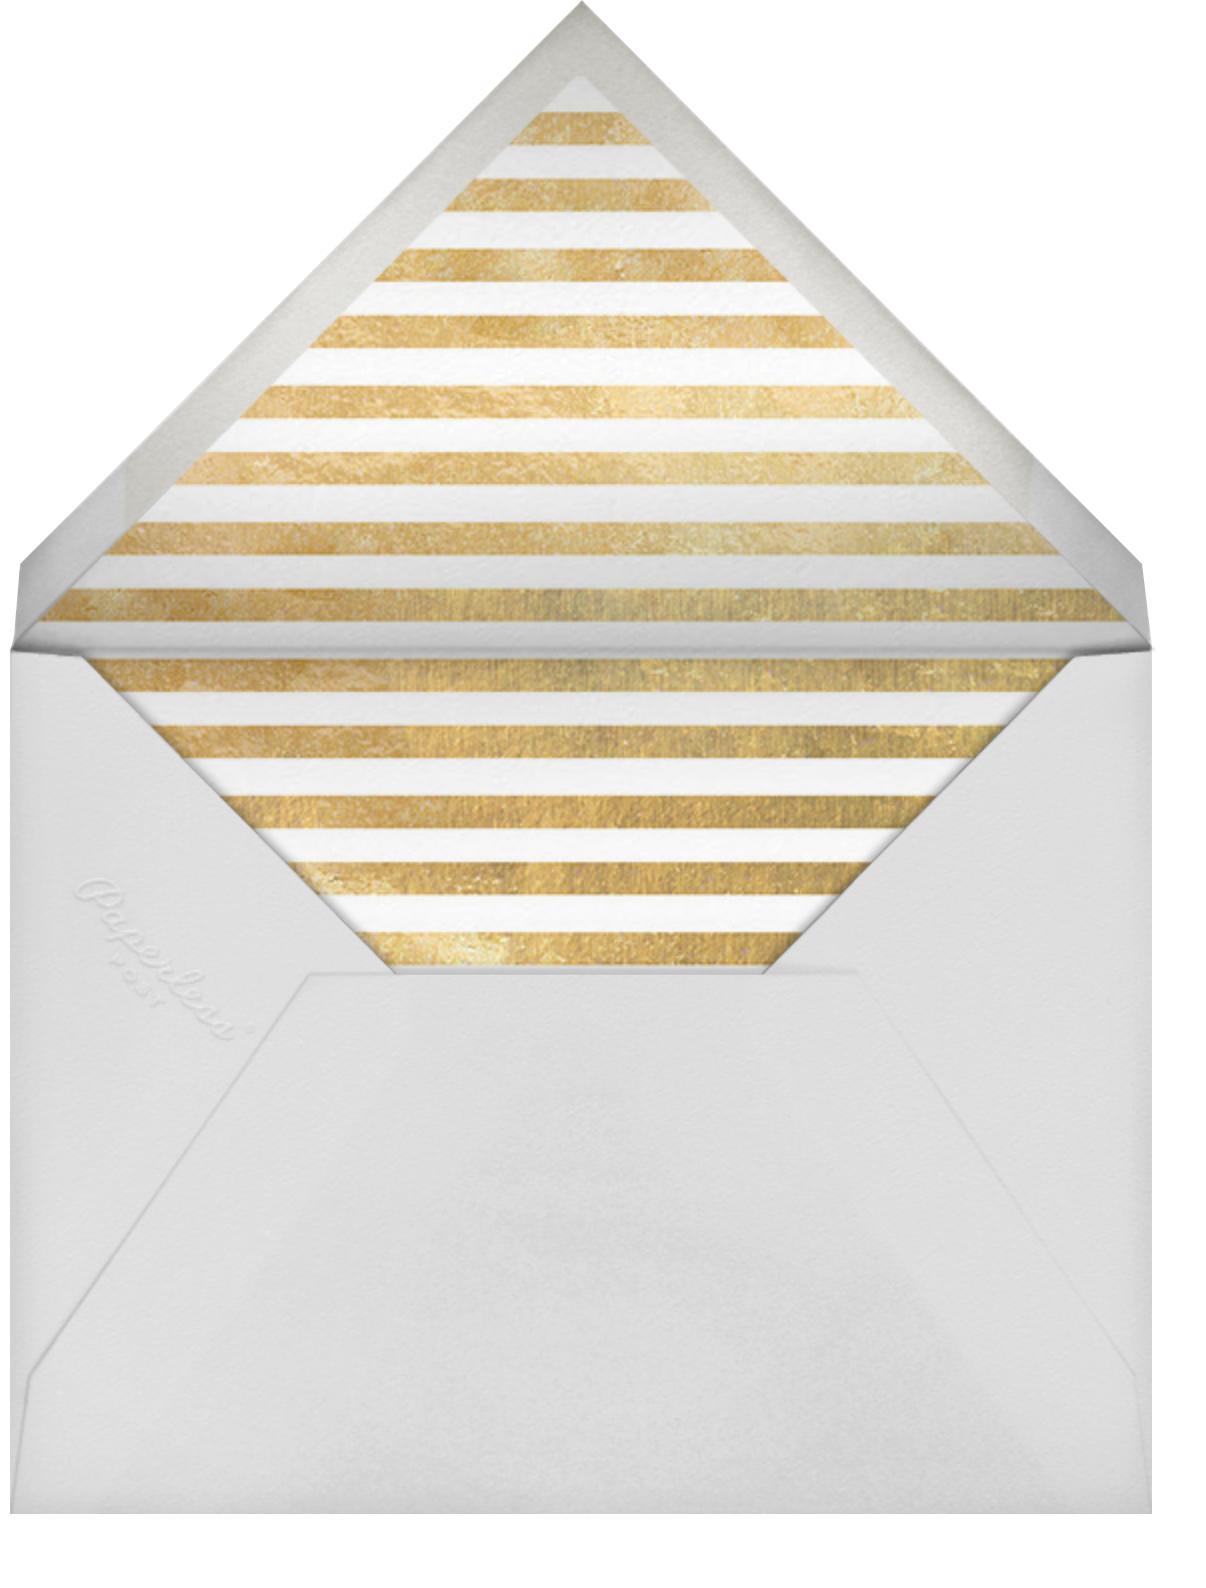 Confetti (Save the Date) - White/Gold - kate spade new york - Holiday save the dates - envelope back